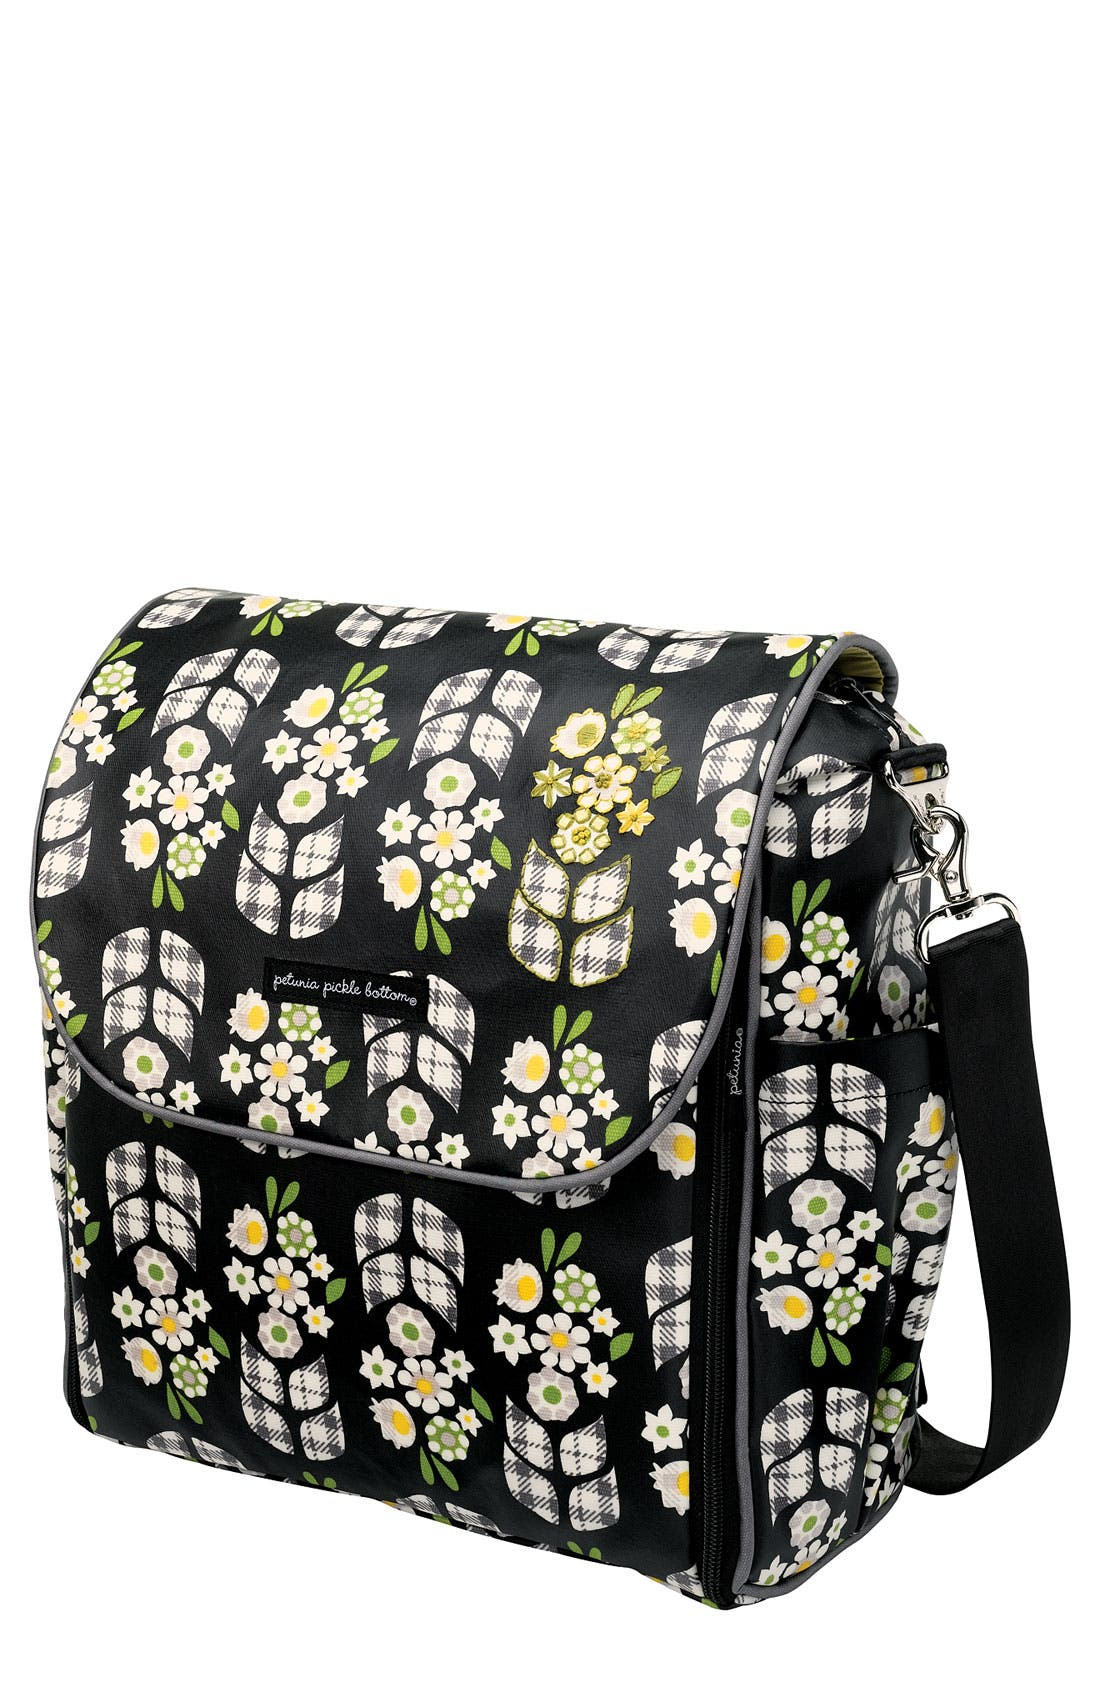 Alternate Image 1 Selected - Disney, It's a Small World by Petunia Pickle Bottom 'Boxy Backpack' Glazed Diaper Bag